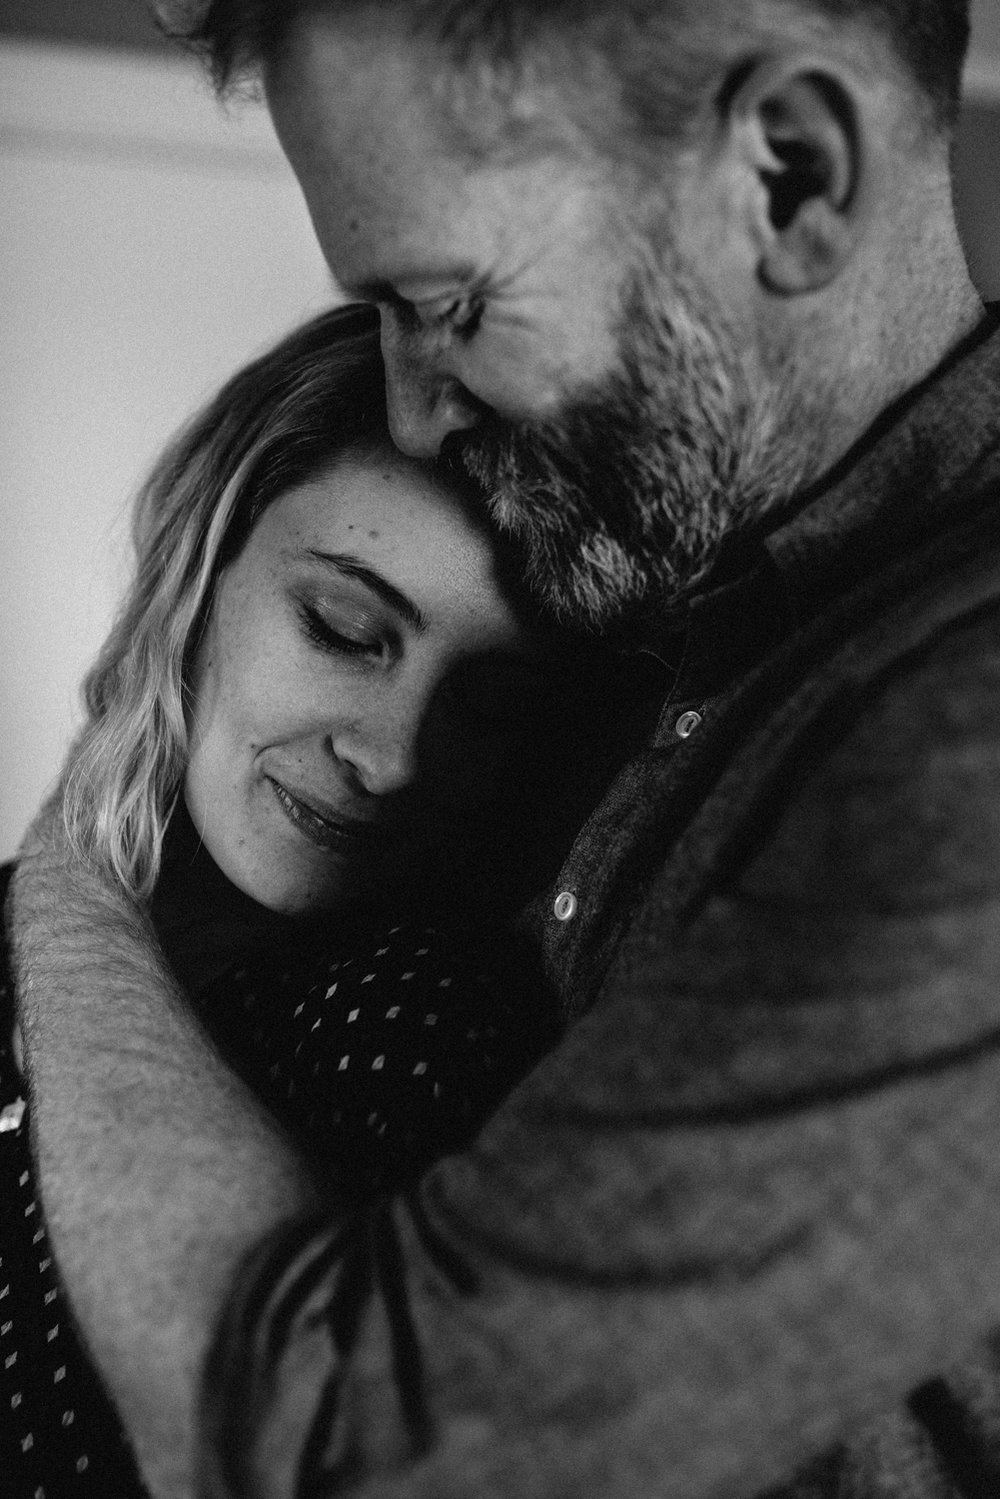 Couple-in-home-portrait-man-holding-vsco-black-white-copyright-Elisabeth-Waller.jpg